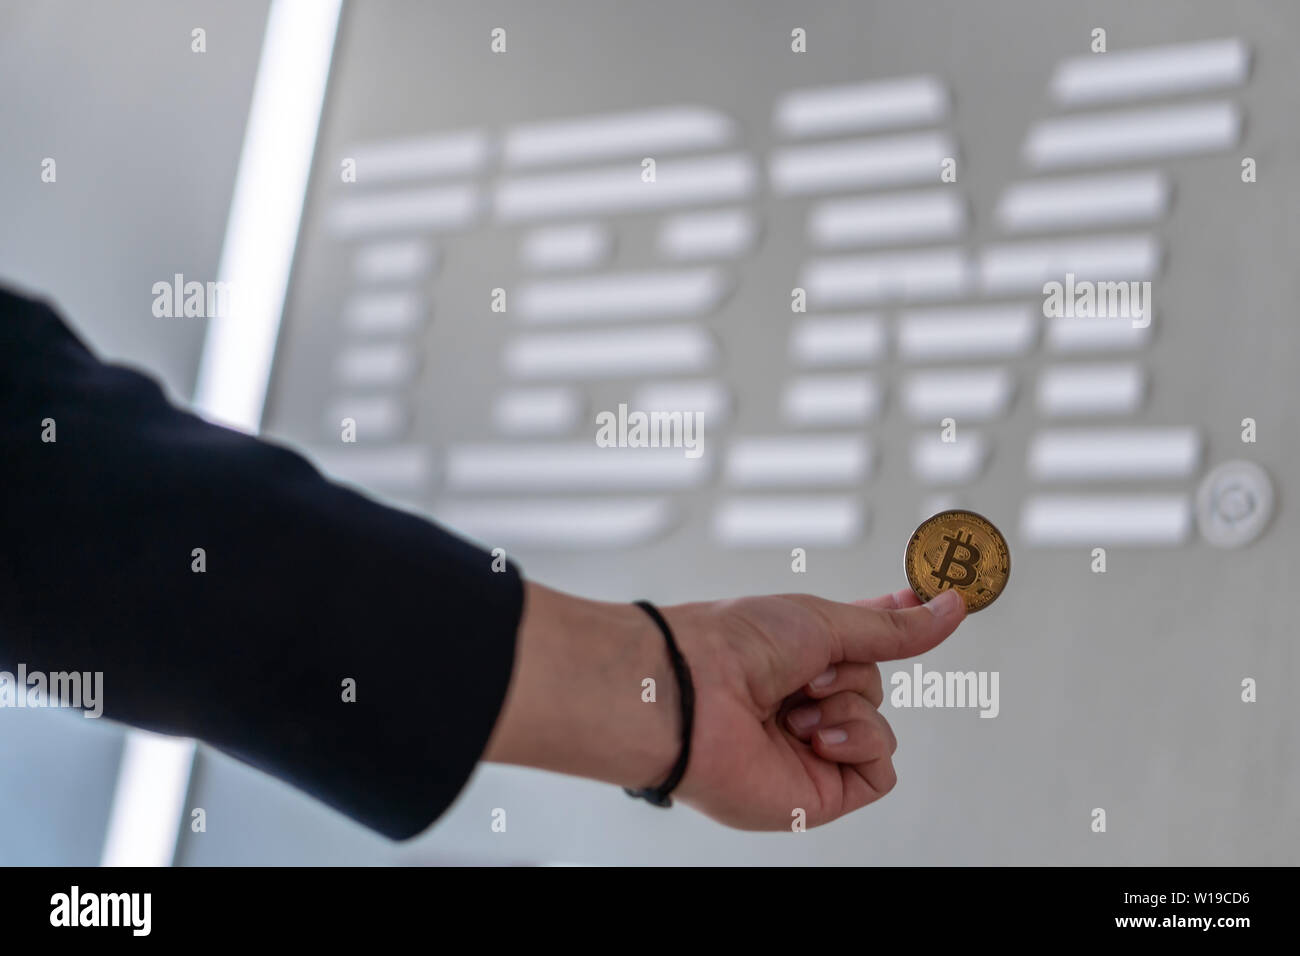 Businessman holding Bitcoin coin with the IBM logo on a laptop screen, Slovenia - February 26th, 2019 Stock Photo